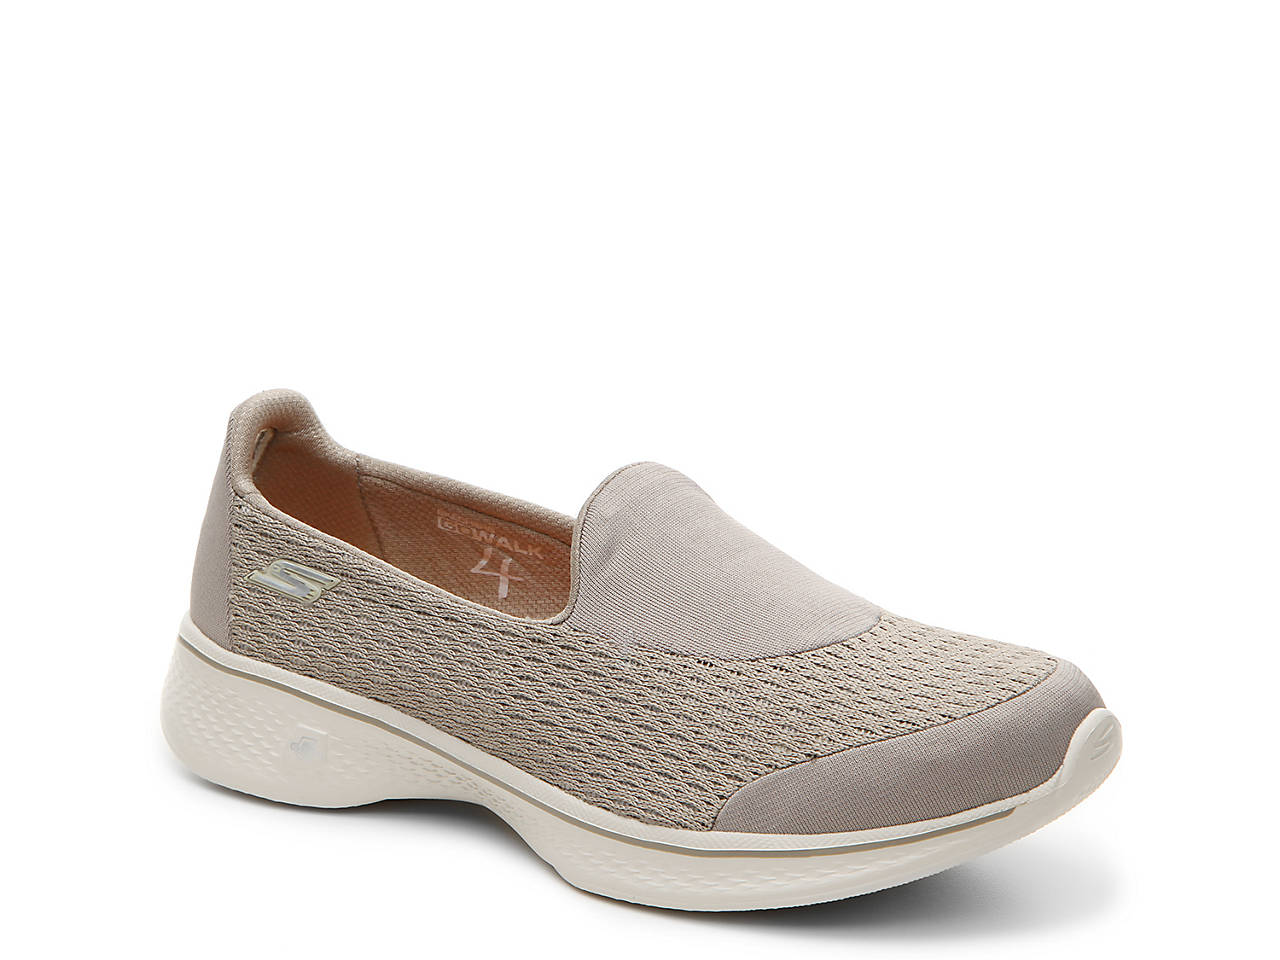 7ad85bbbd8908 Skechers GOwalk 4 Pursuit Slip-On Sneaker Women s Shoes